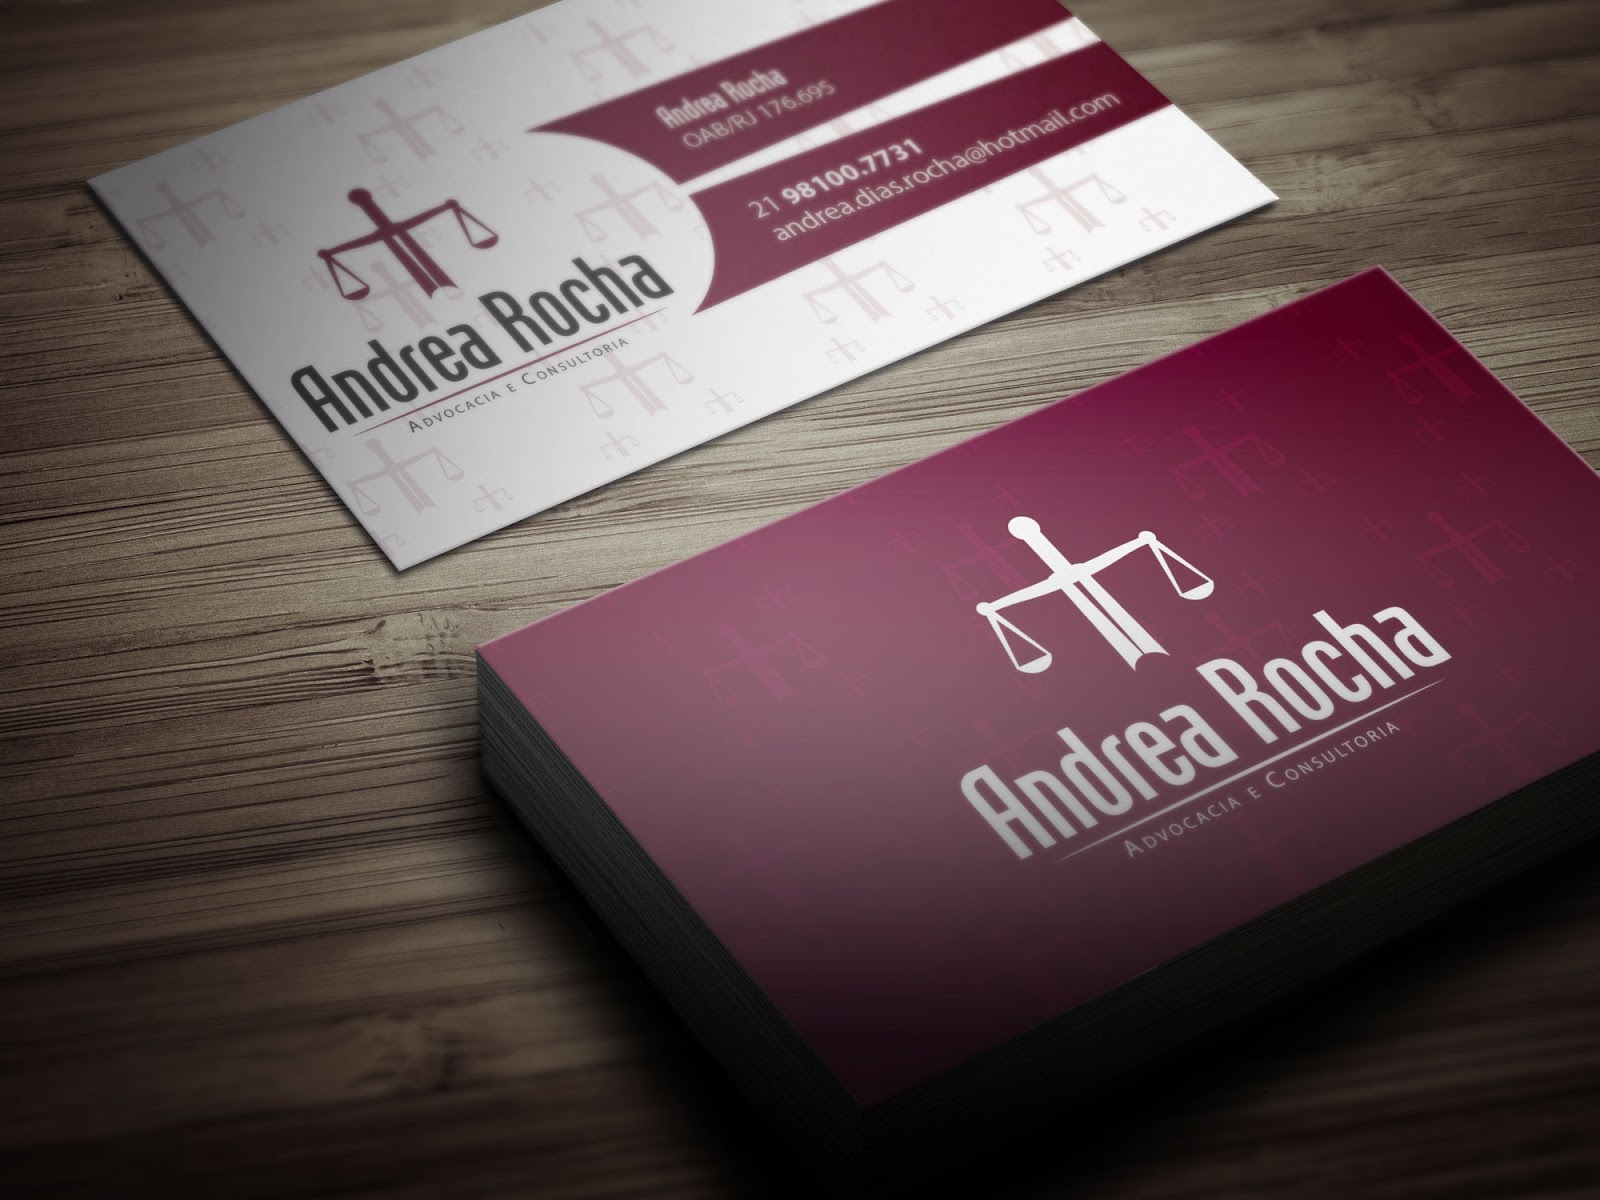 Attorney business cards business card tips lawyer business card templates free attorney business cards rules law office business cards cheaphphosting Images